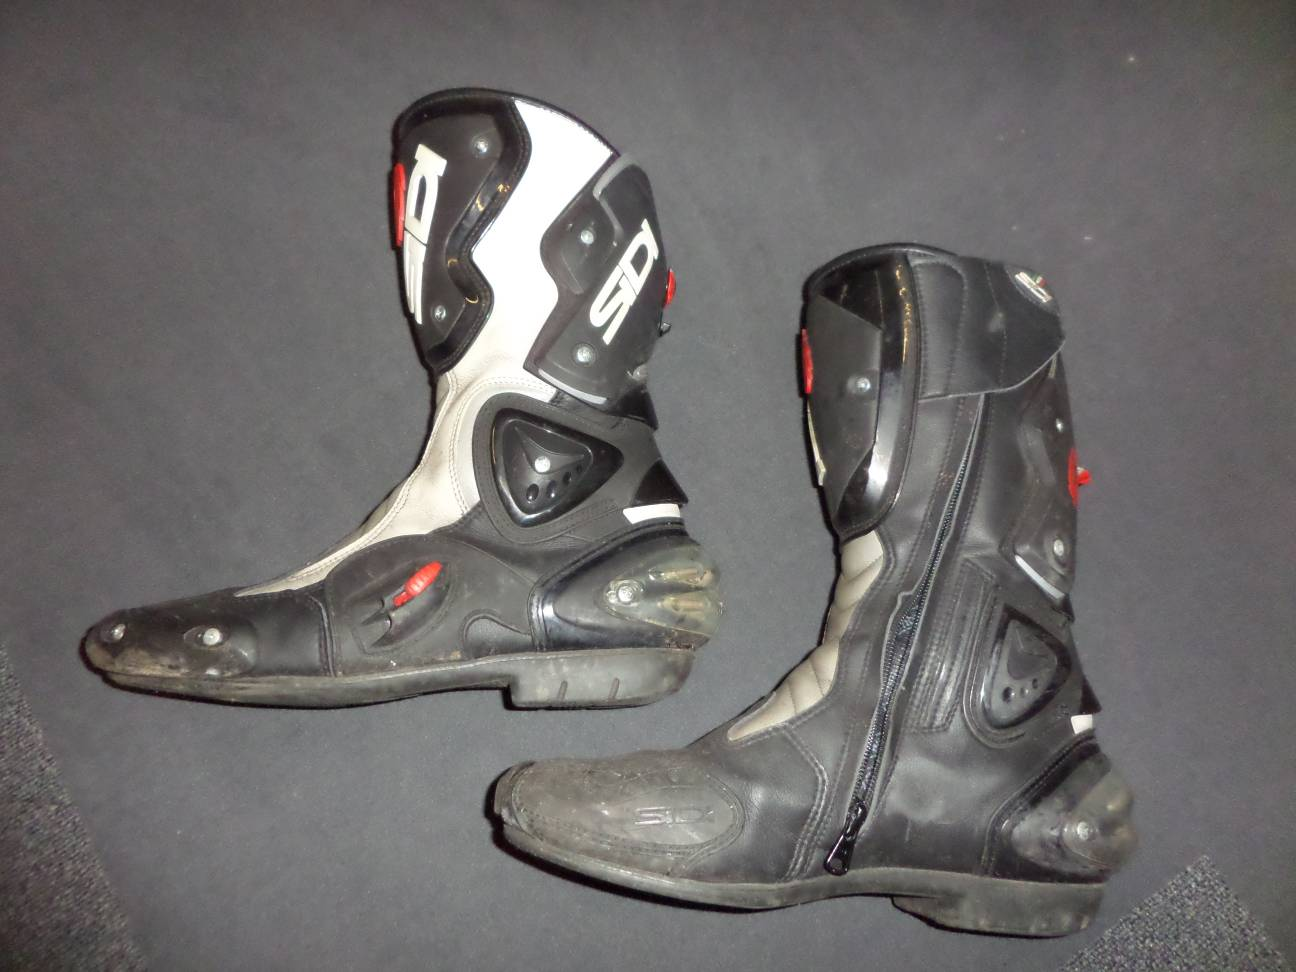 Used: Sidi Vertigo boots review | Visordown